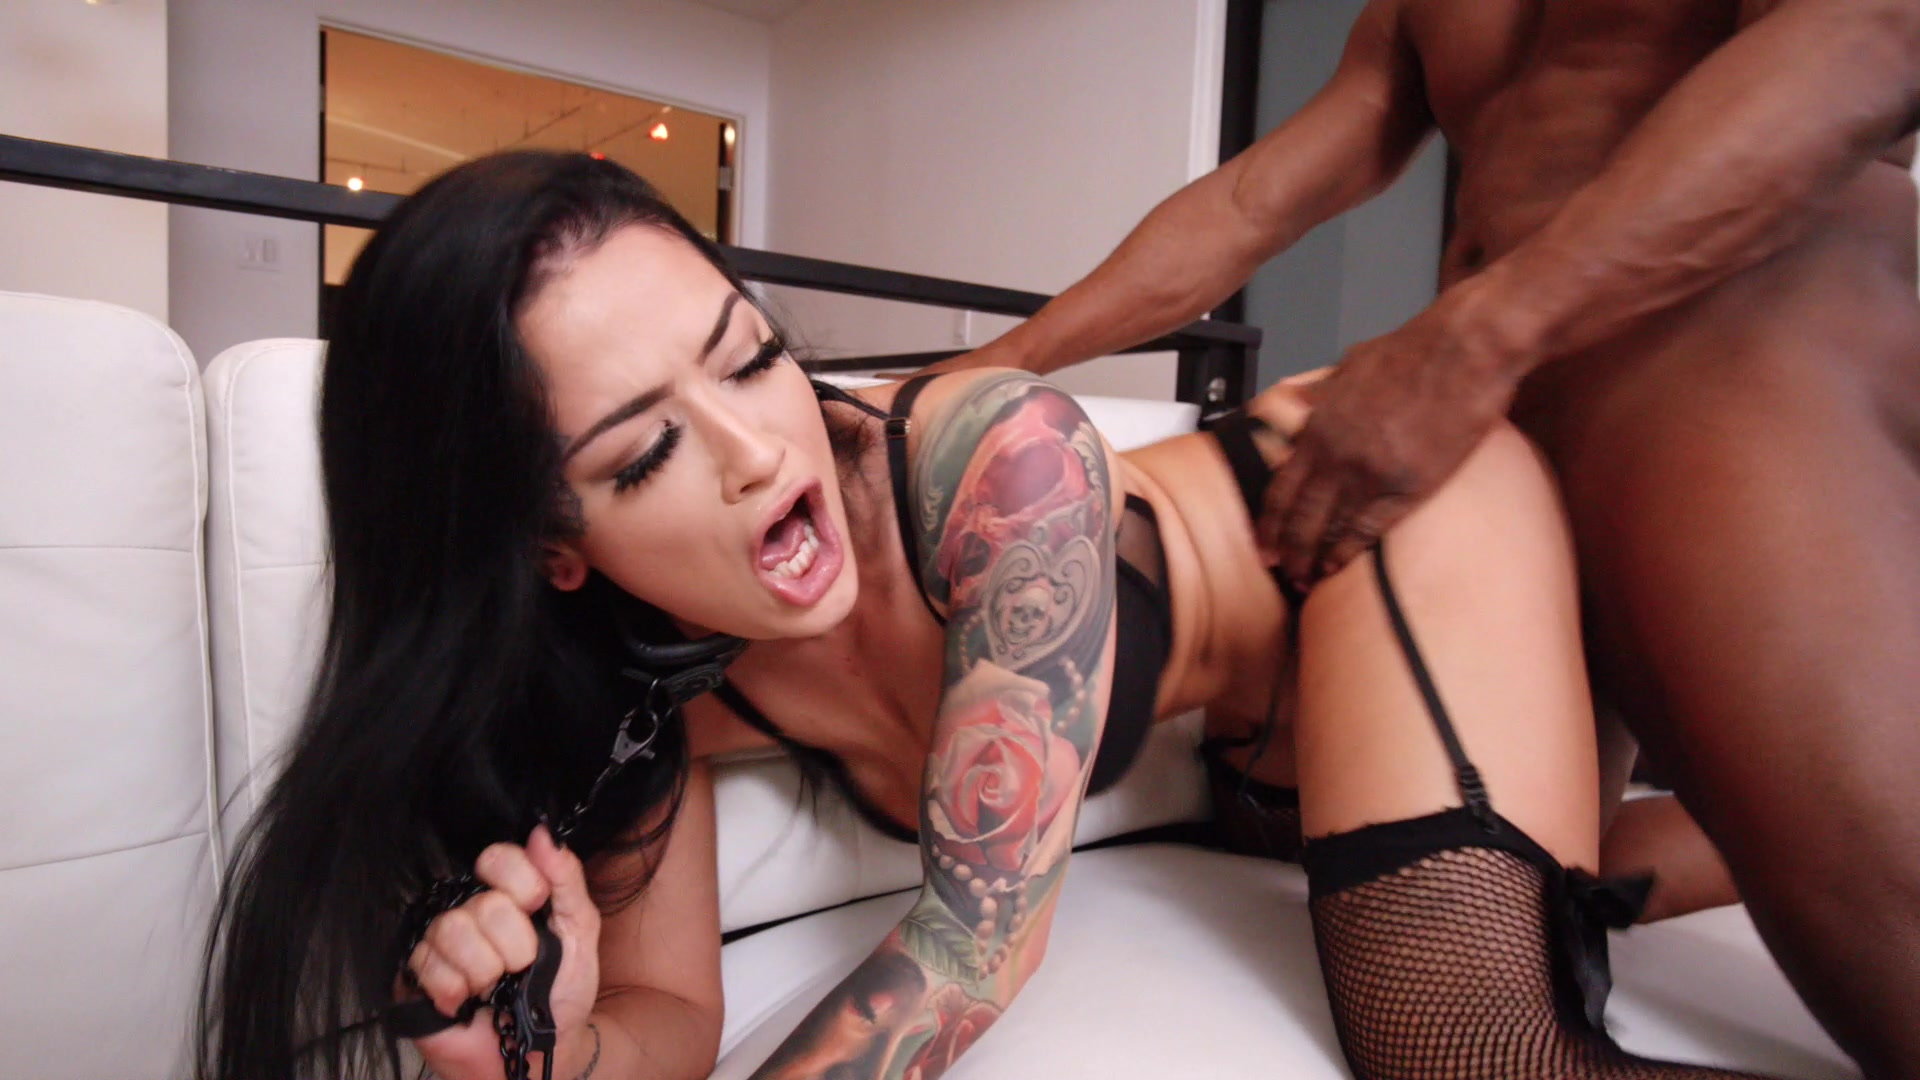 Scene with Katrina Jade - image 10 out of 20